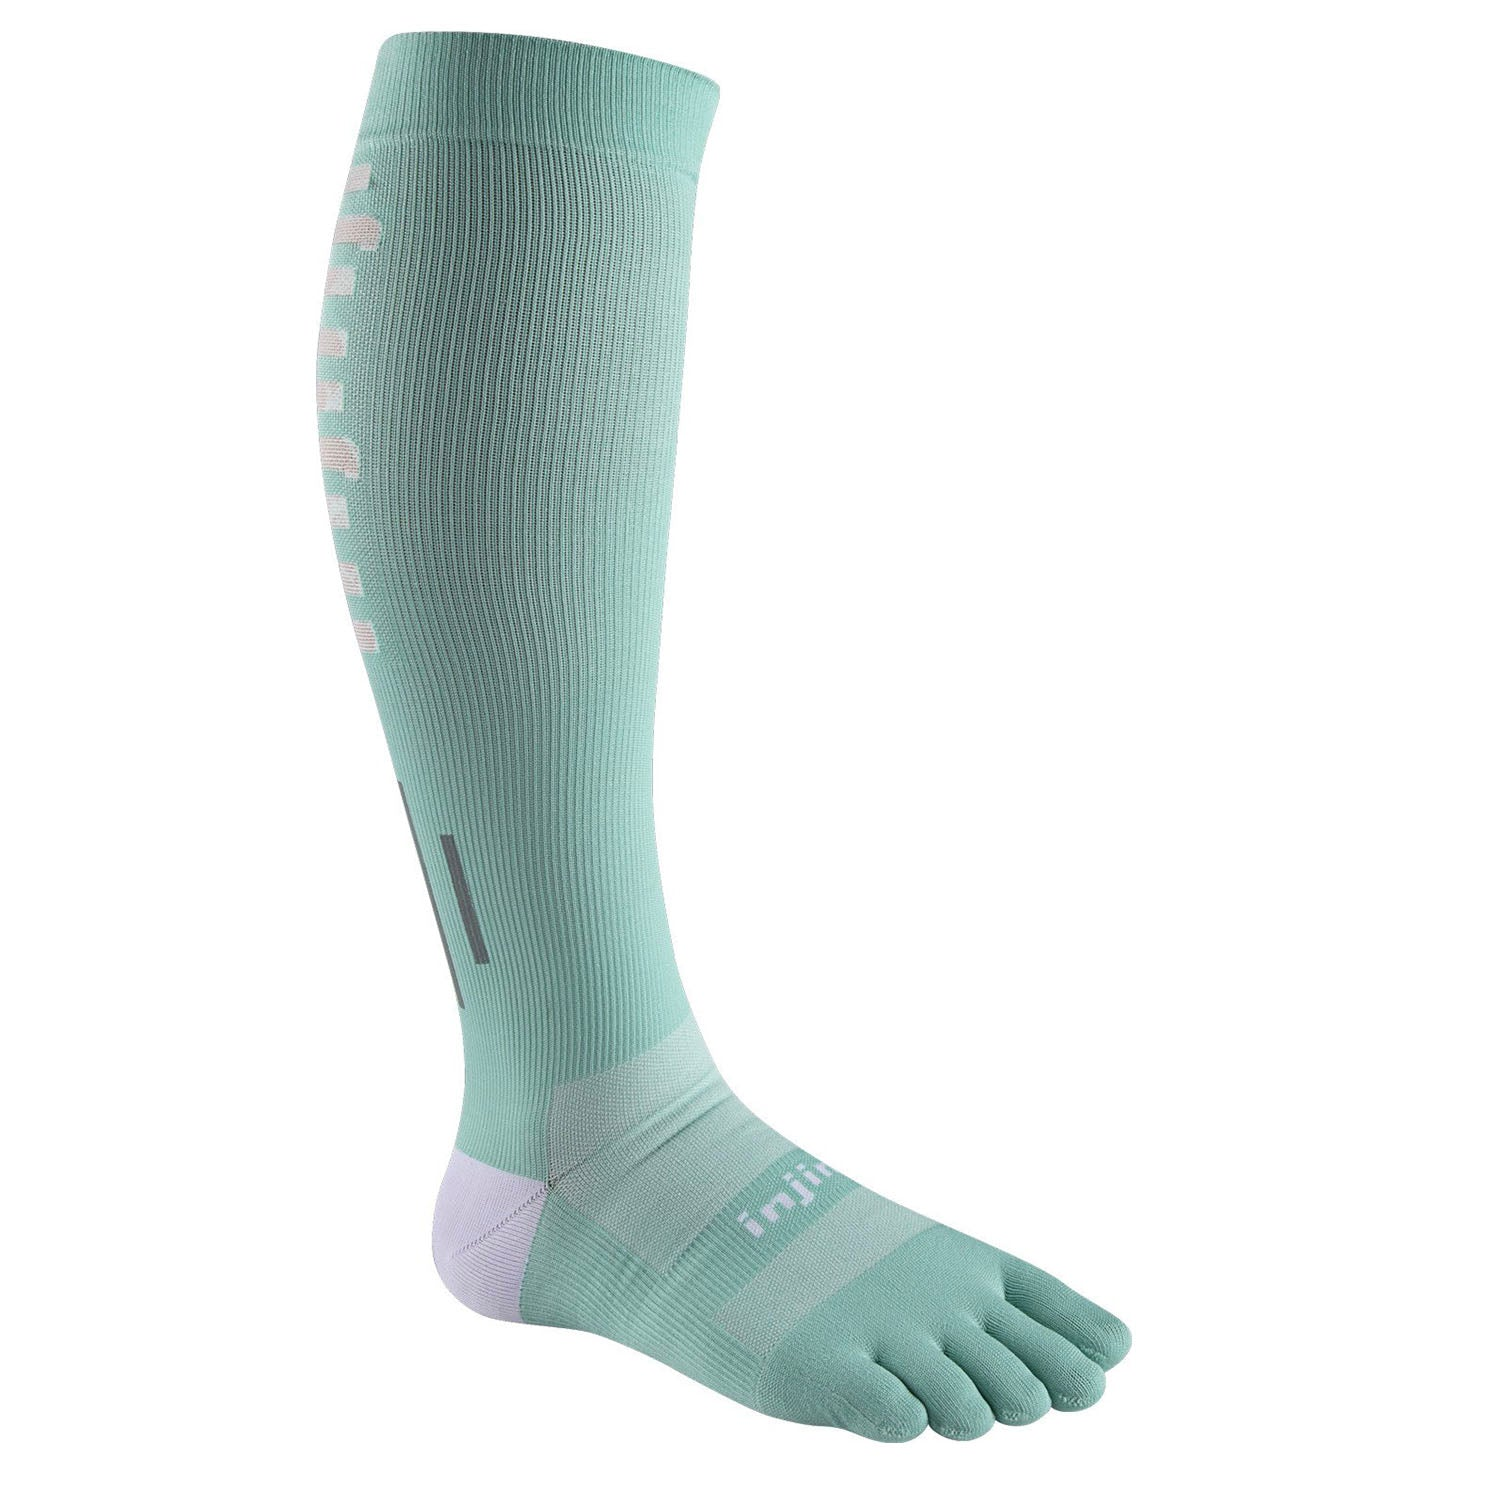 Injinji ULTRA Compression Women's Socks - Jade